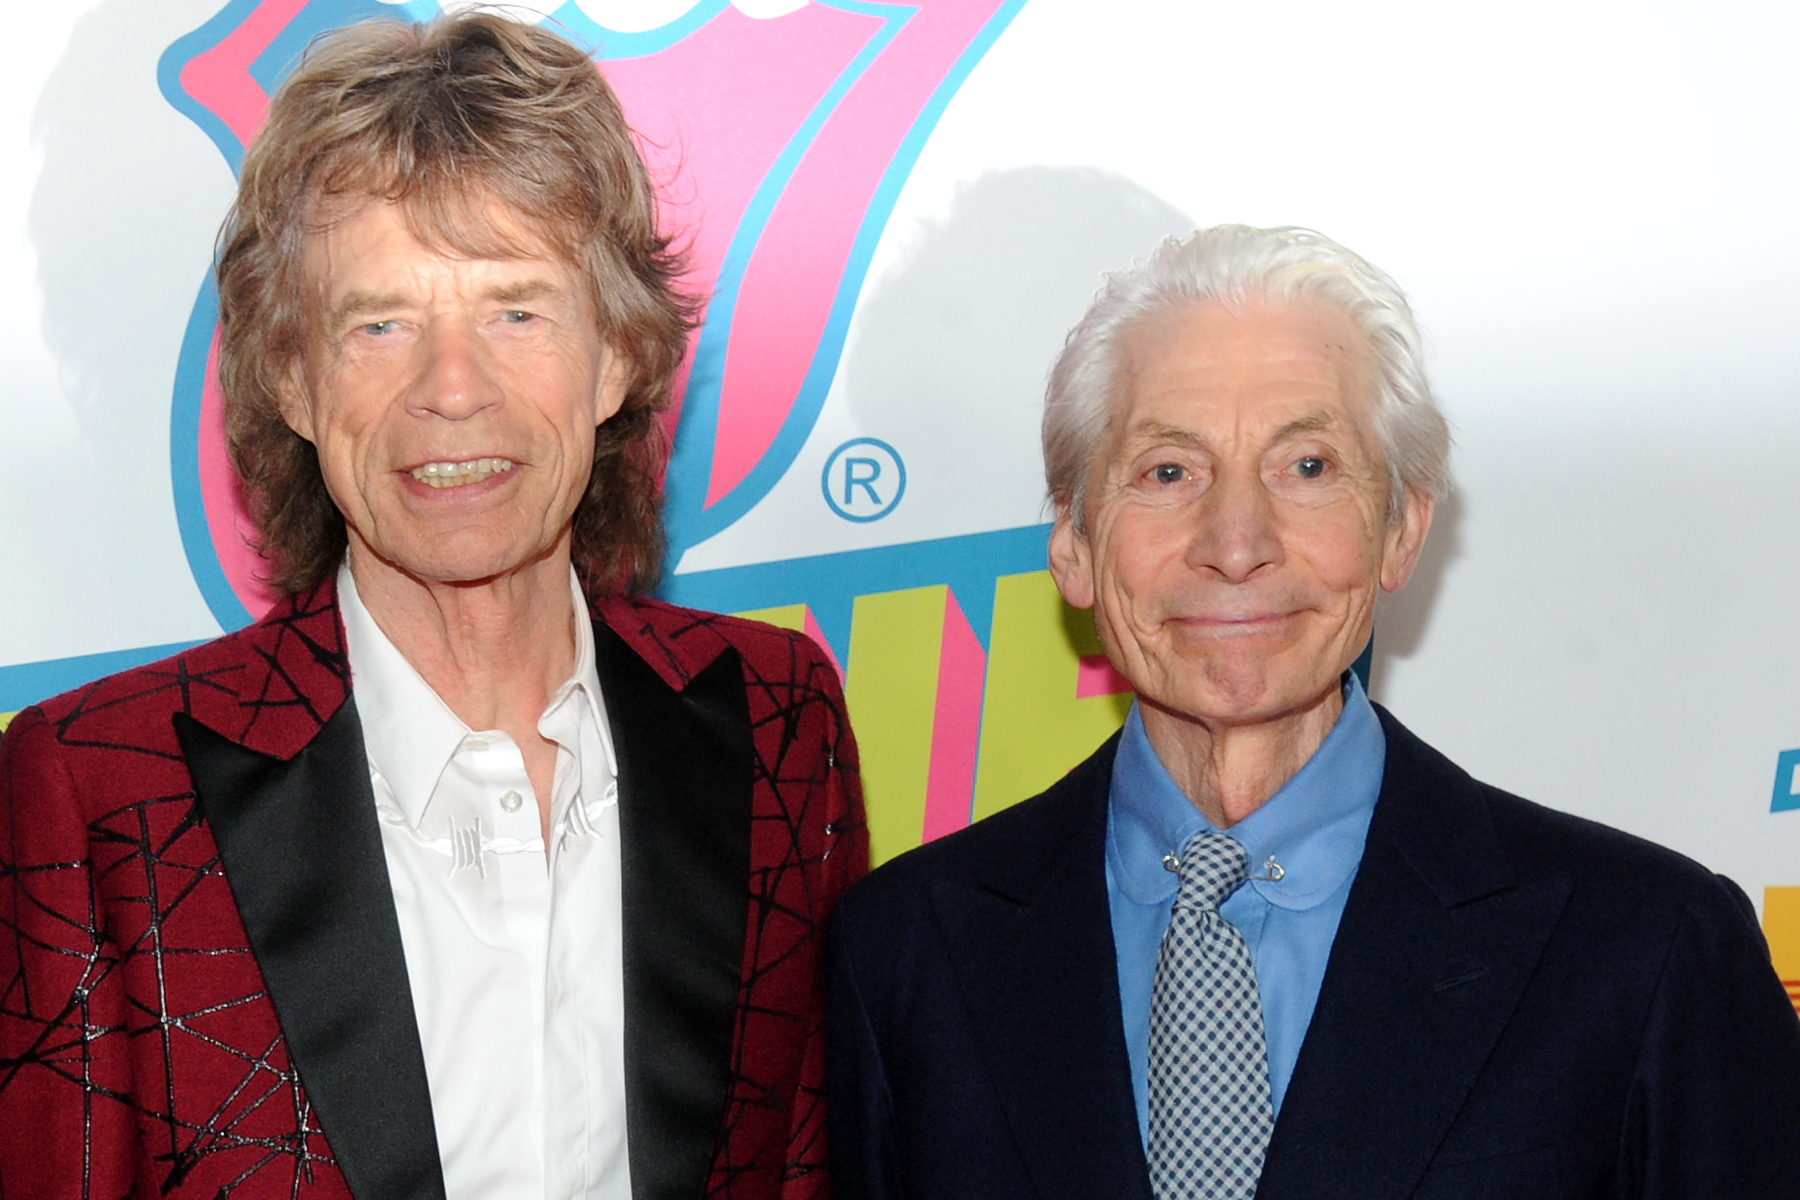 Mick Jagger Remembers the Rolling Stones' 'Heartbeat' Charlie Watts on 'Howard Stern' thumbnail